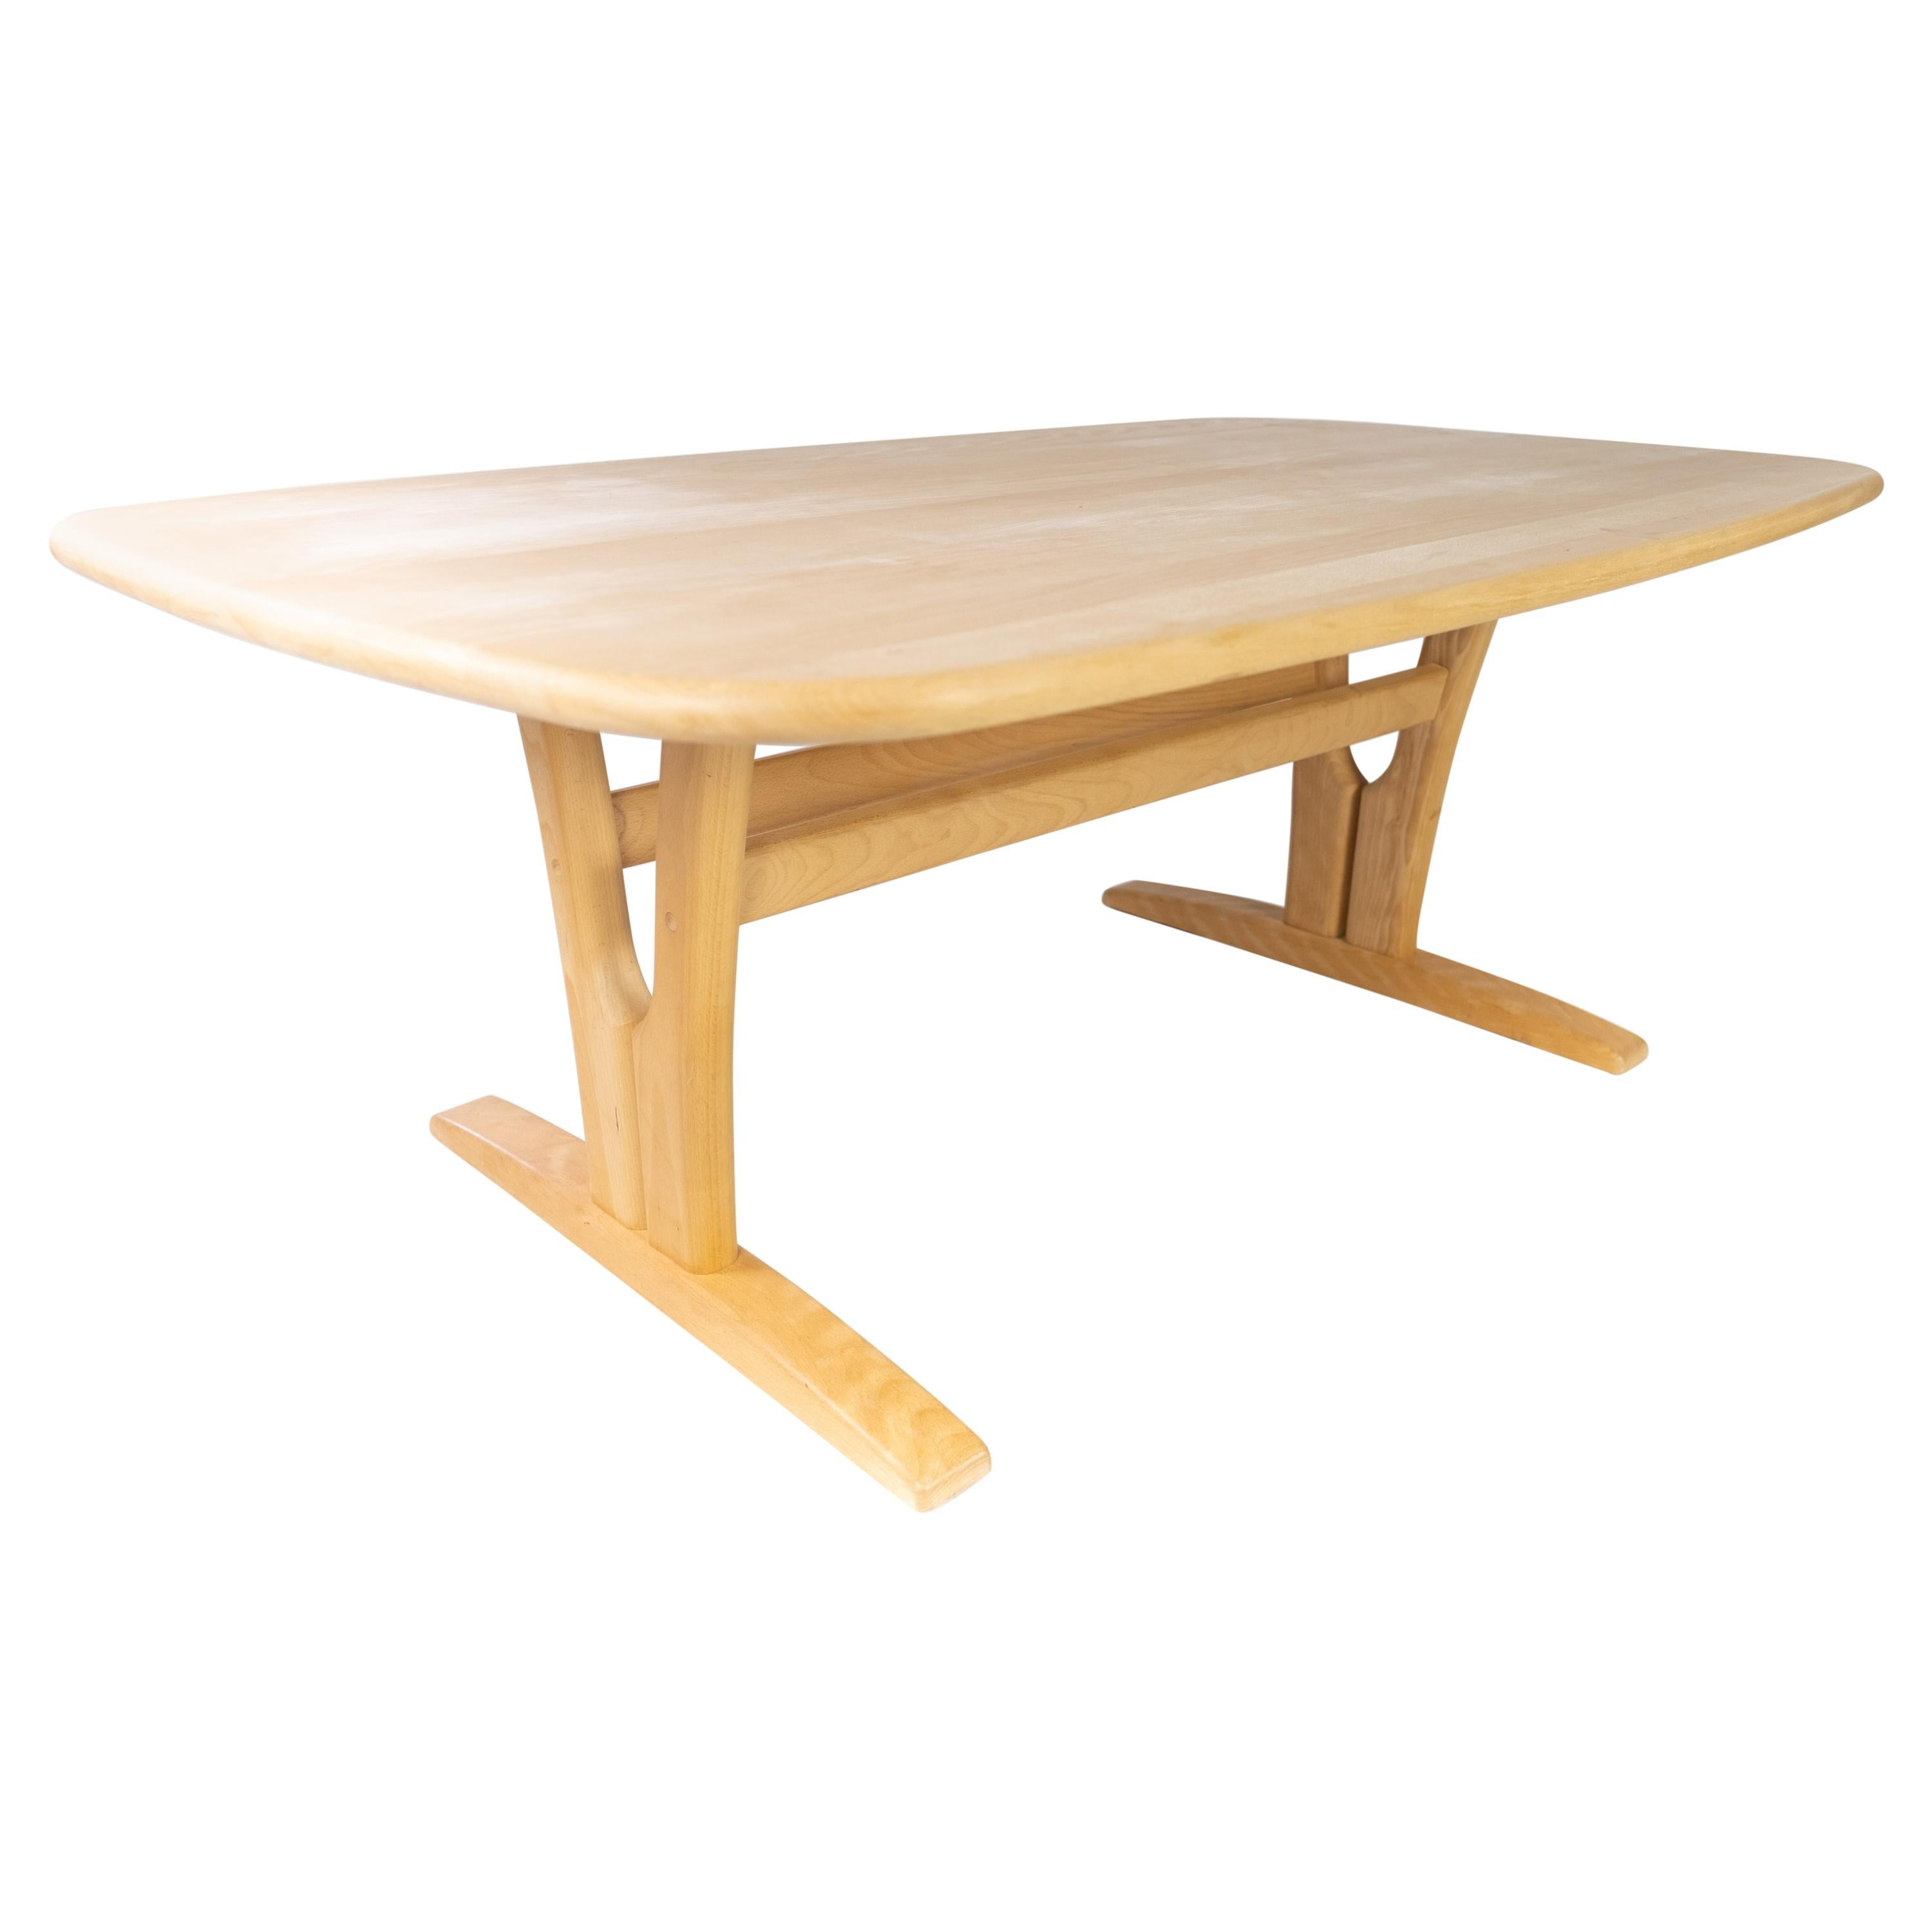 Coffee Table in Beech of Danish Design Manufactured by Skovby Furniture Factory